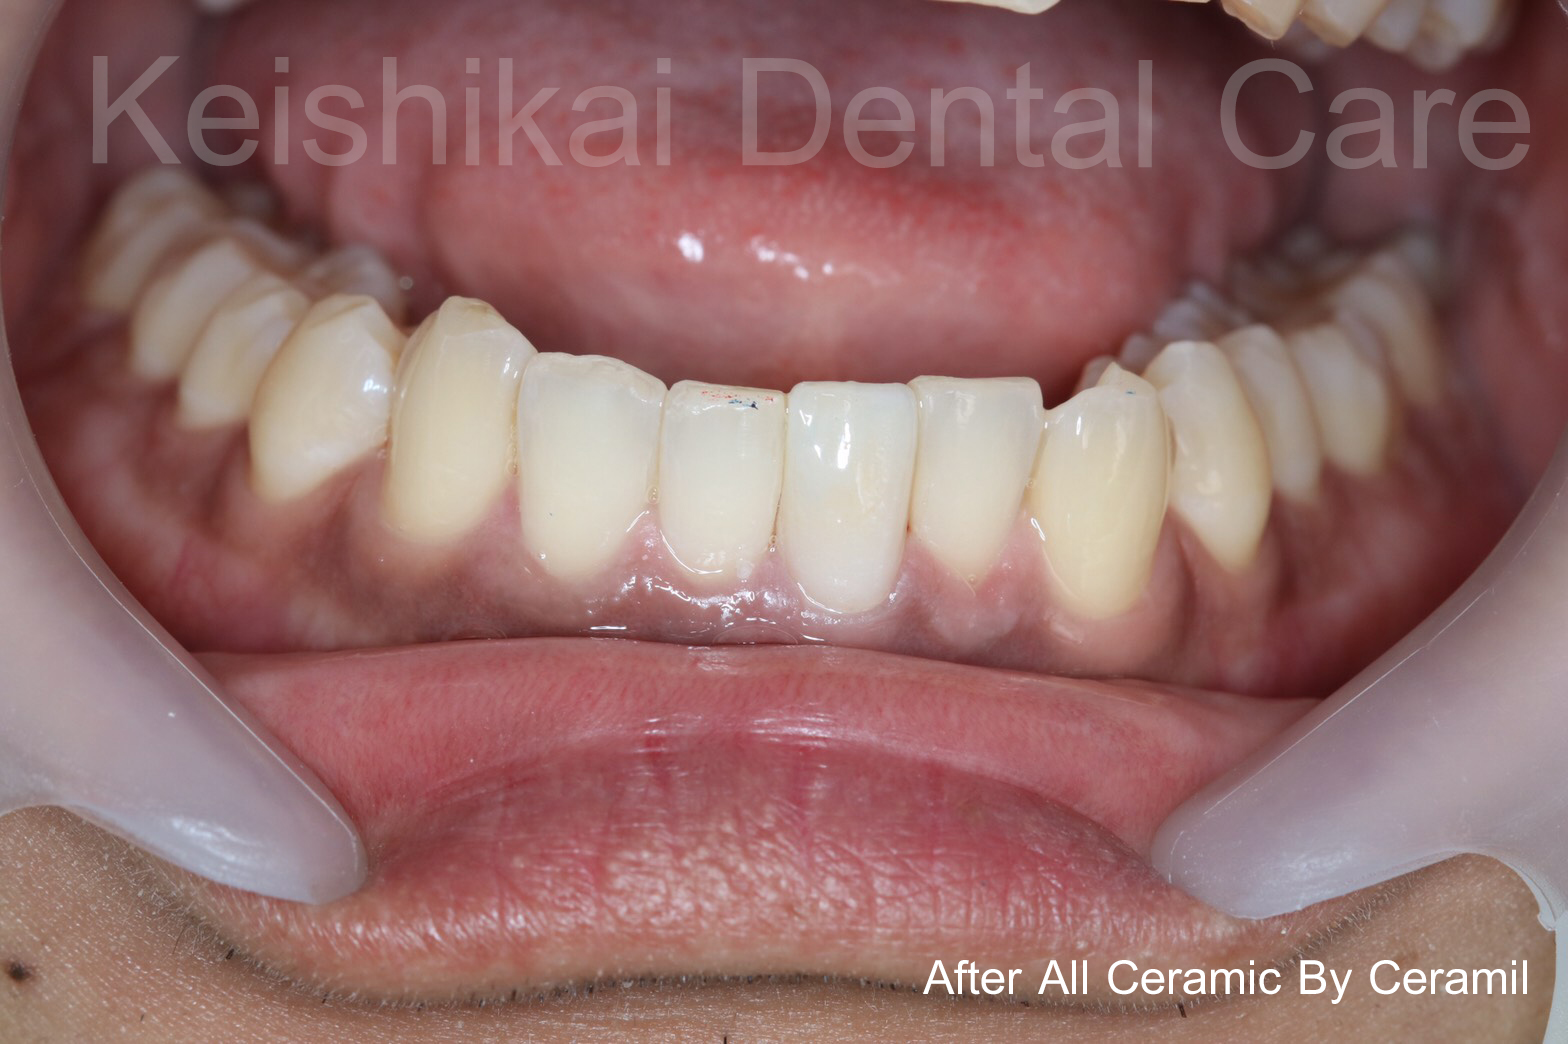 After2-All Ceramic By Ceramil-keishikaidentalclinic